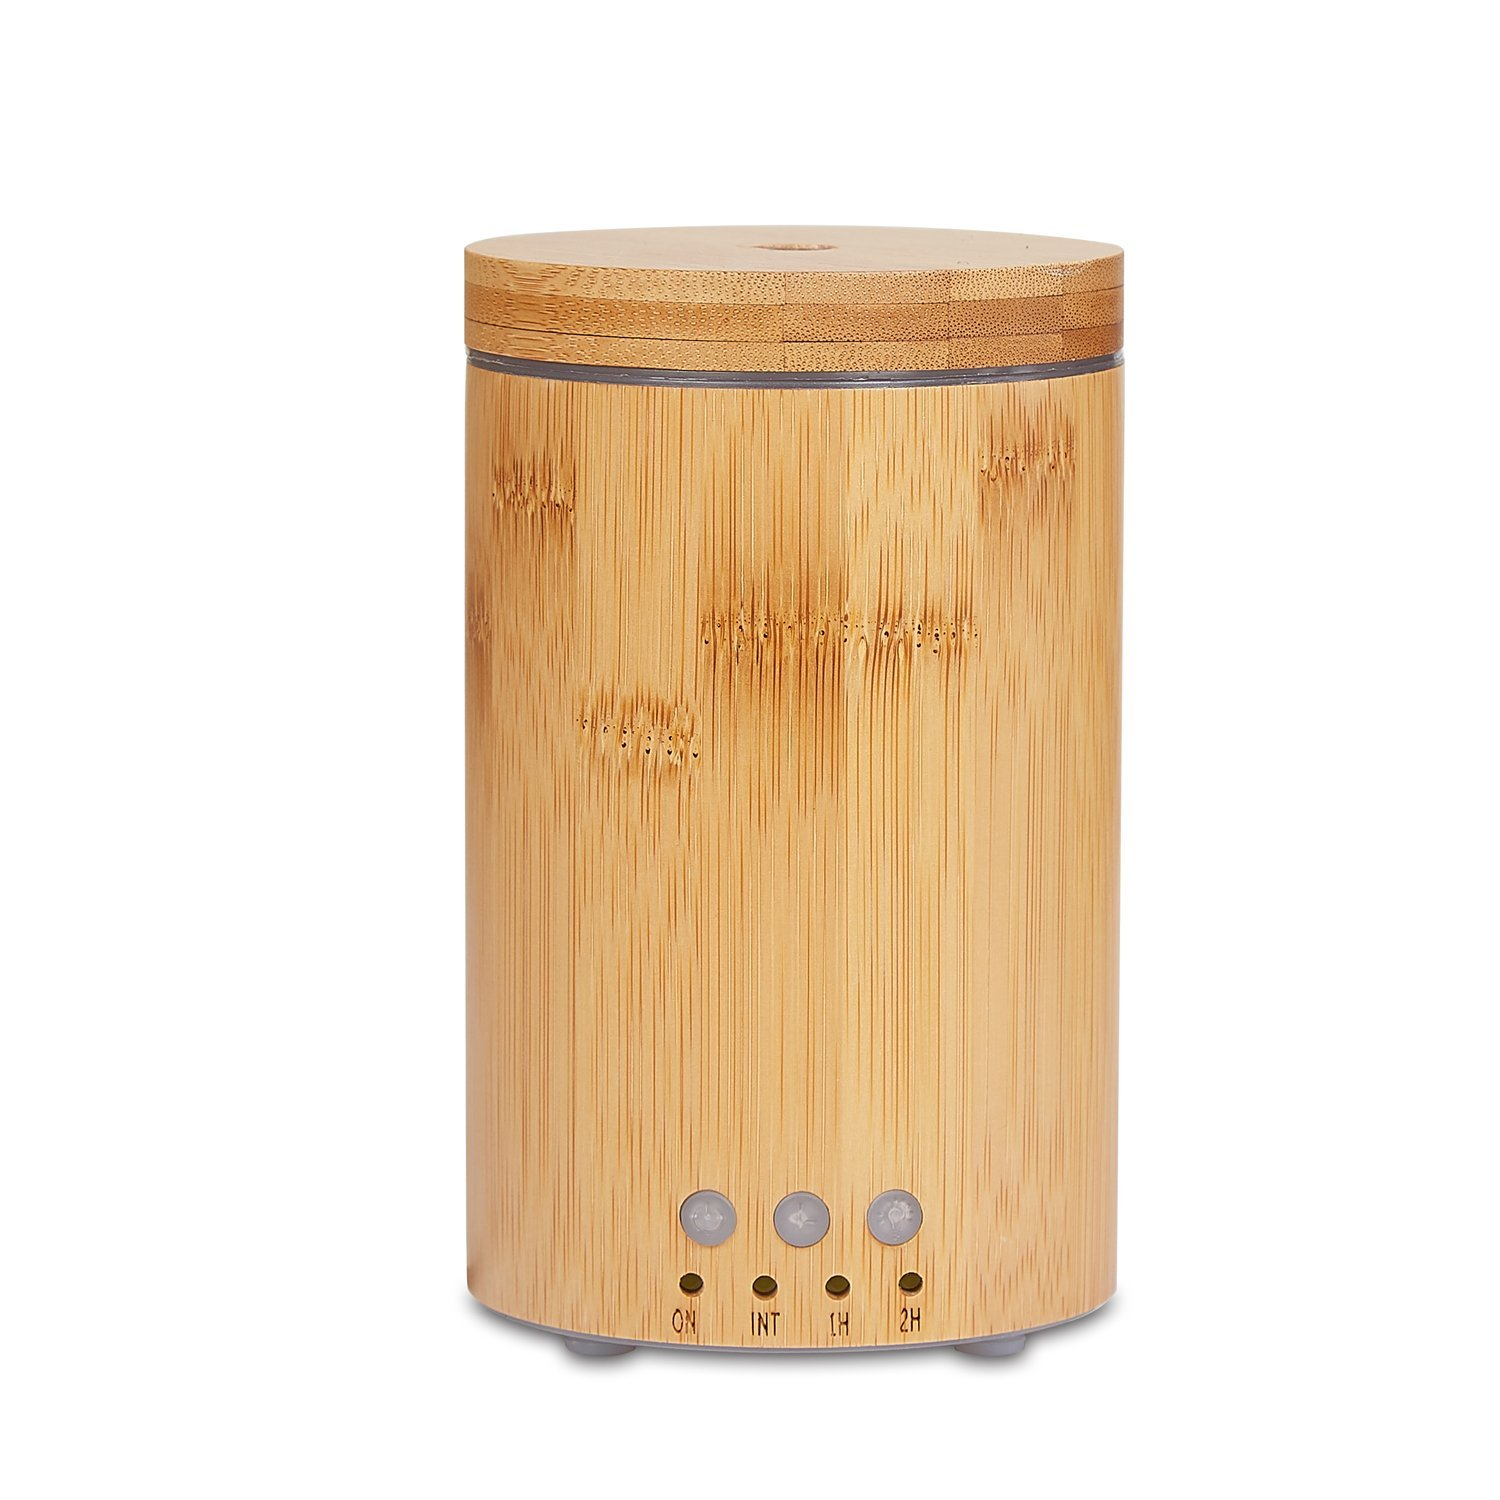 air humidifier home ultrasonic humidifier aroma diffuser 150ml essential oil diffuser 7 Color Changing LED Light